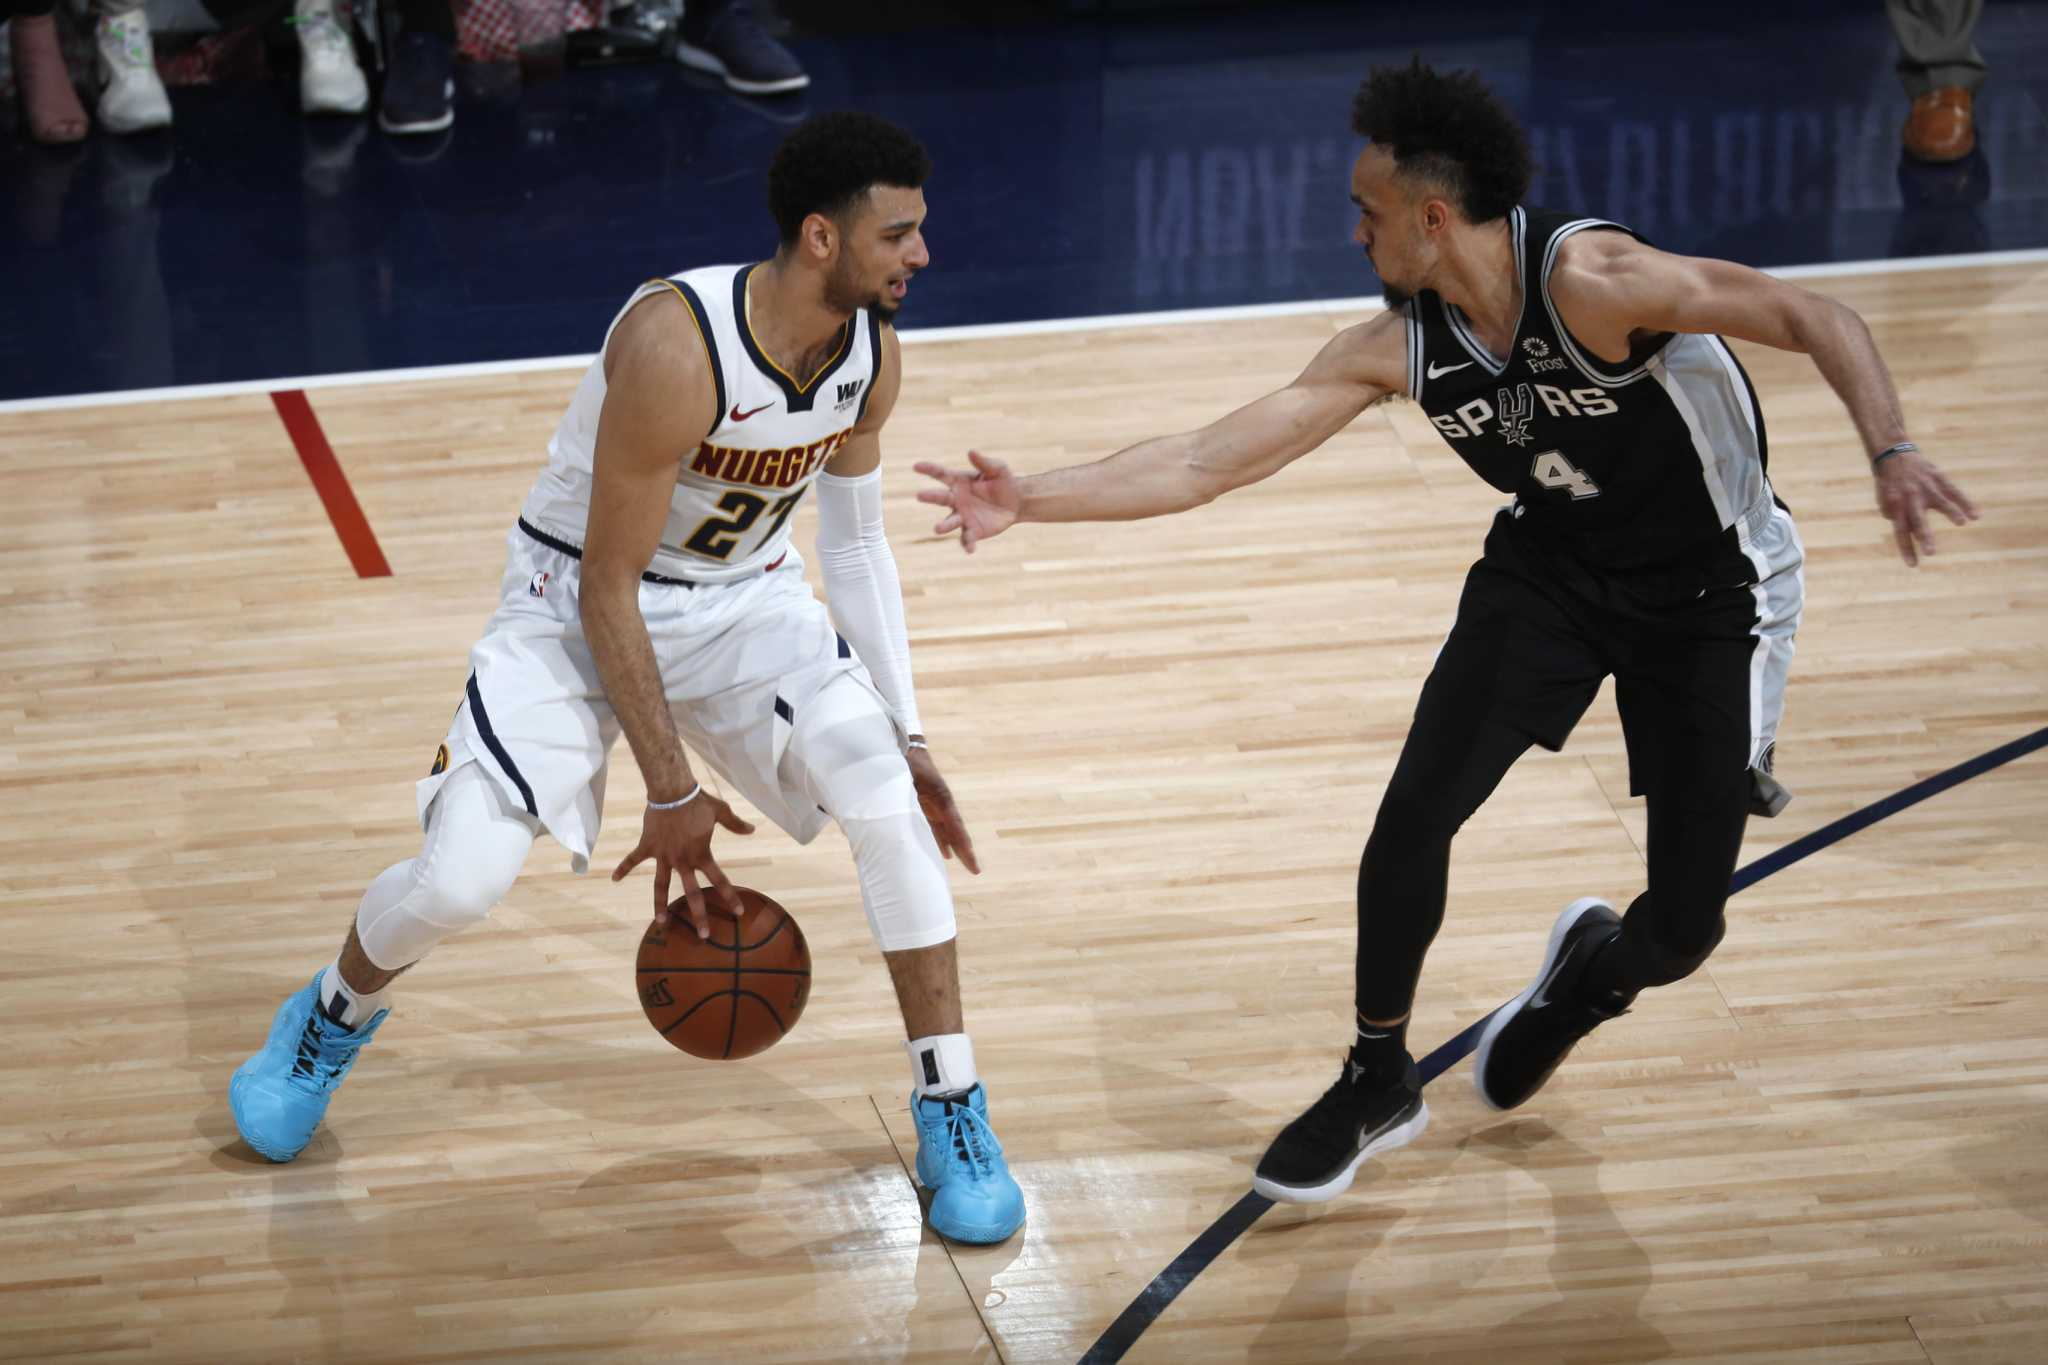 For Spurs, Nuggets point guard school in session